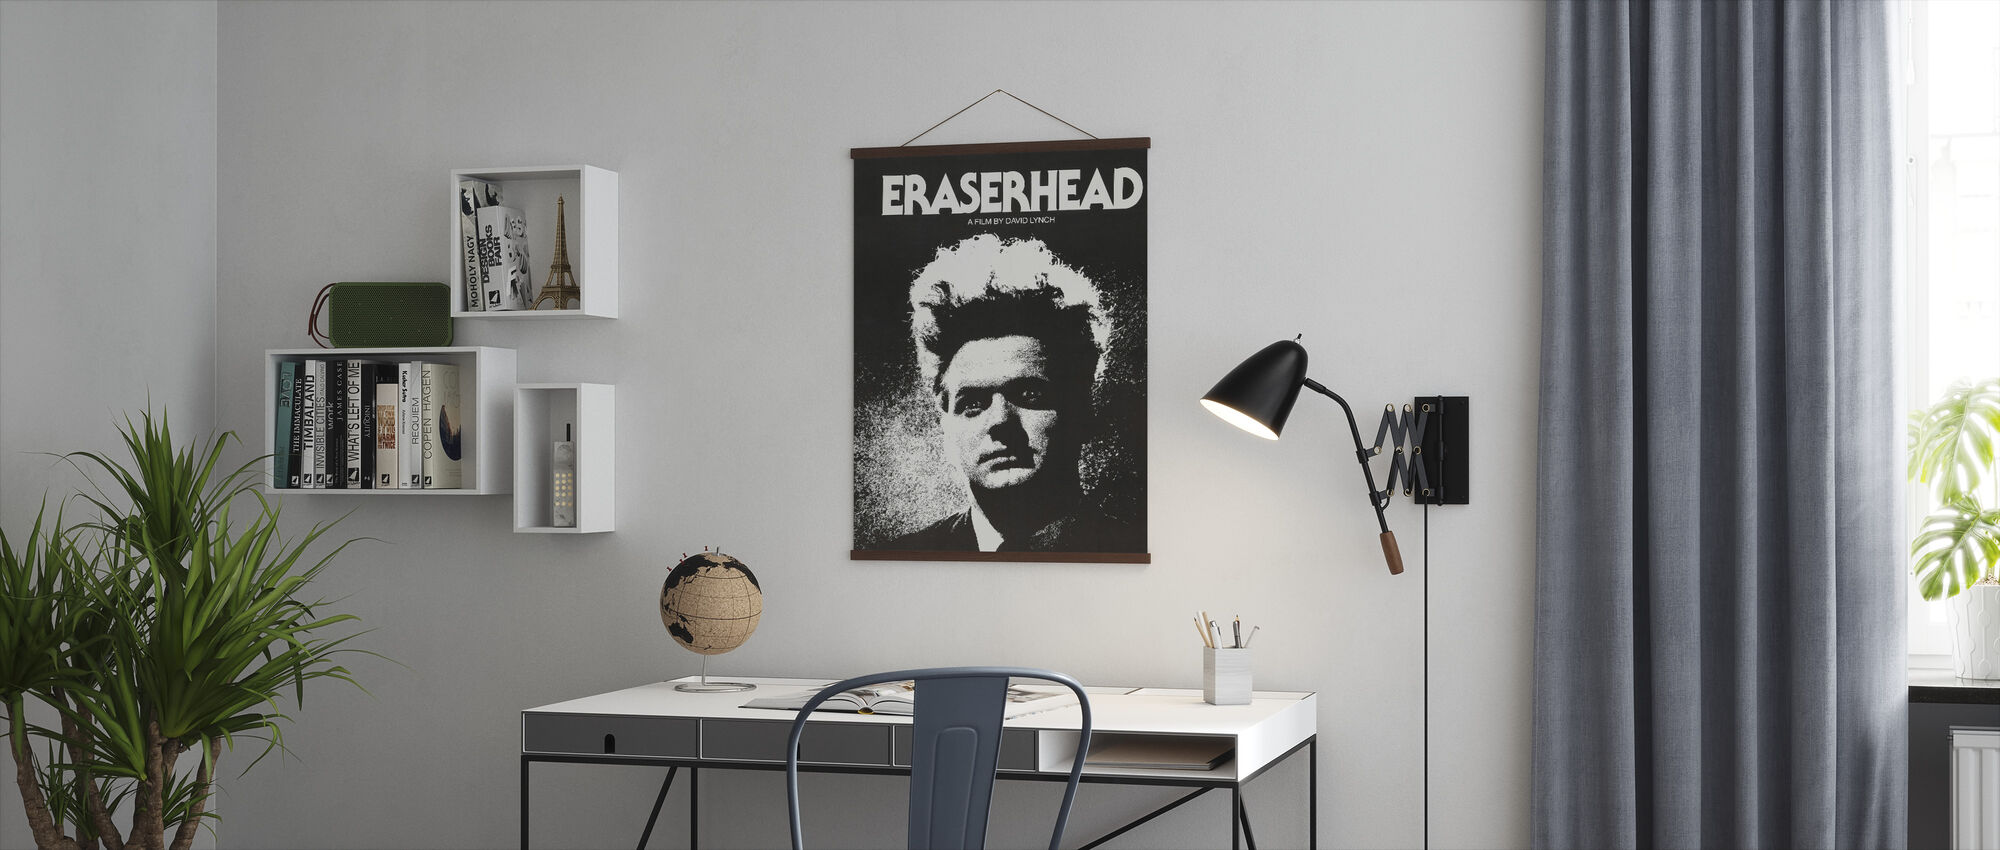 Eraserhead - Poster - Office